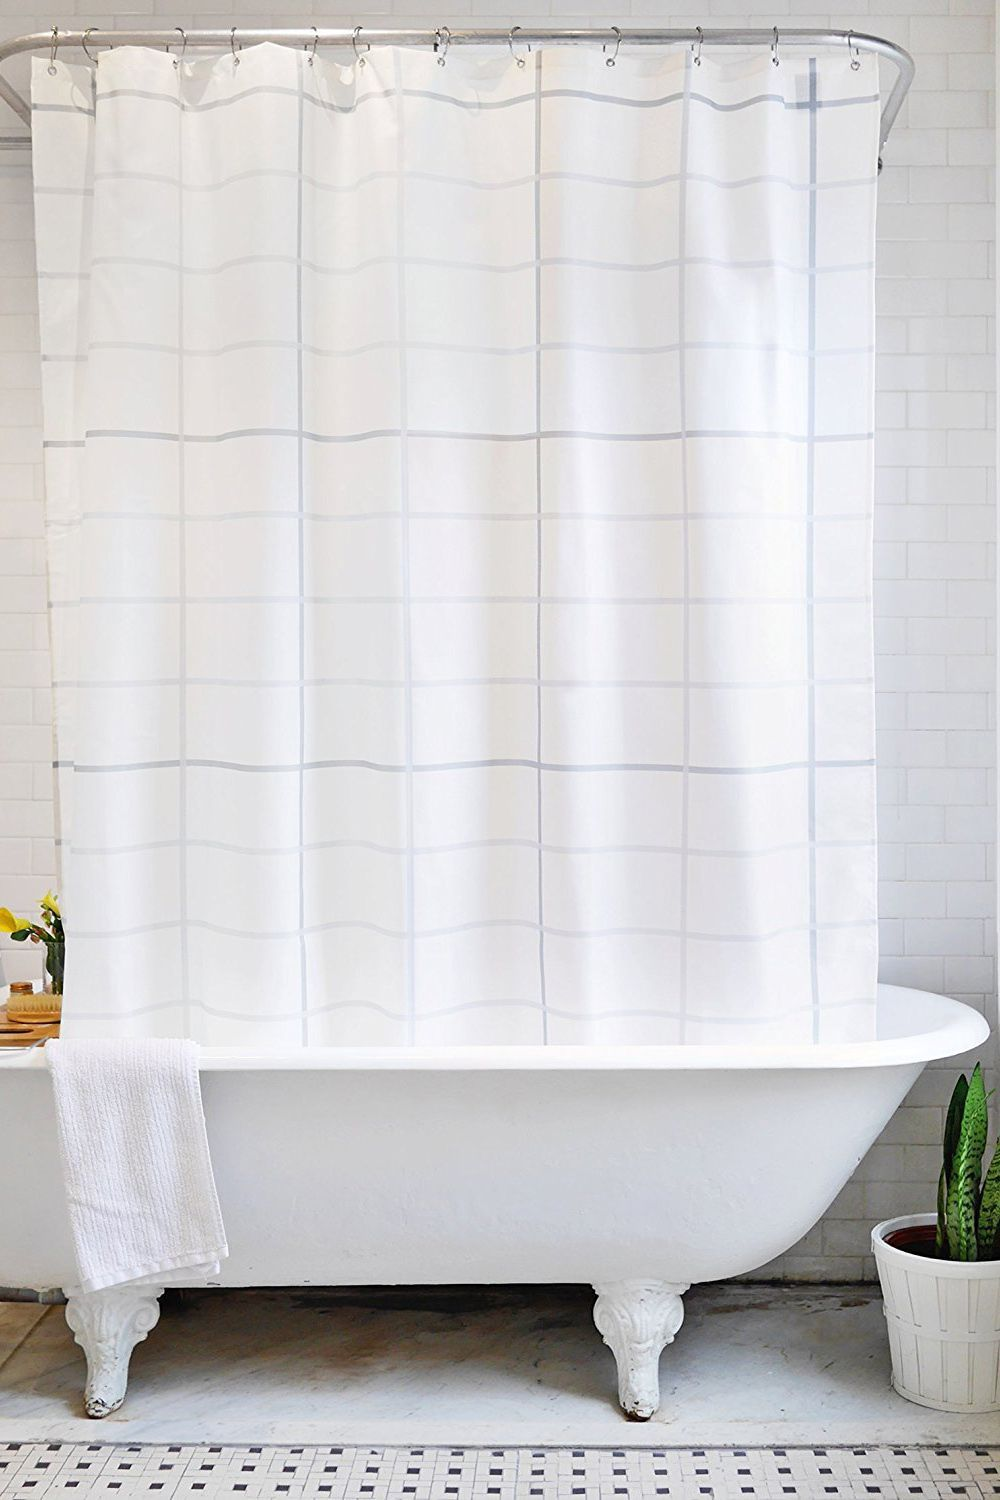 Bathroom Shower Curtain A Classic Option